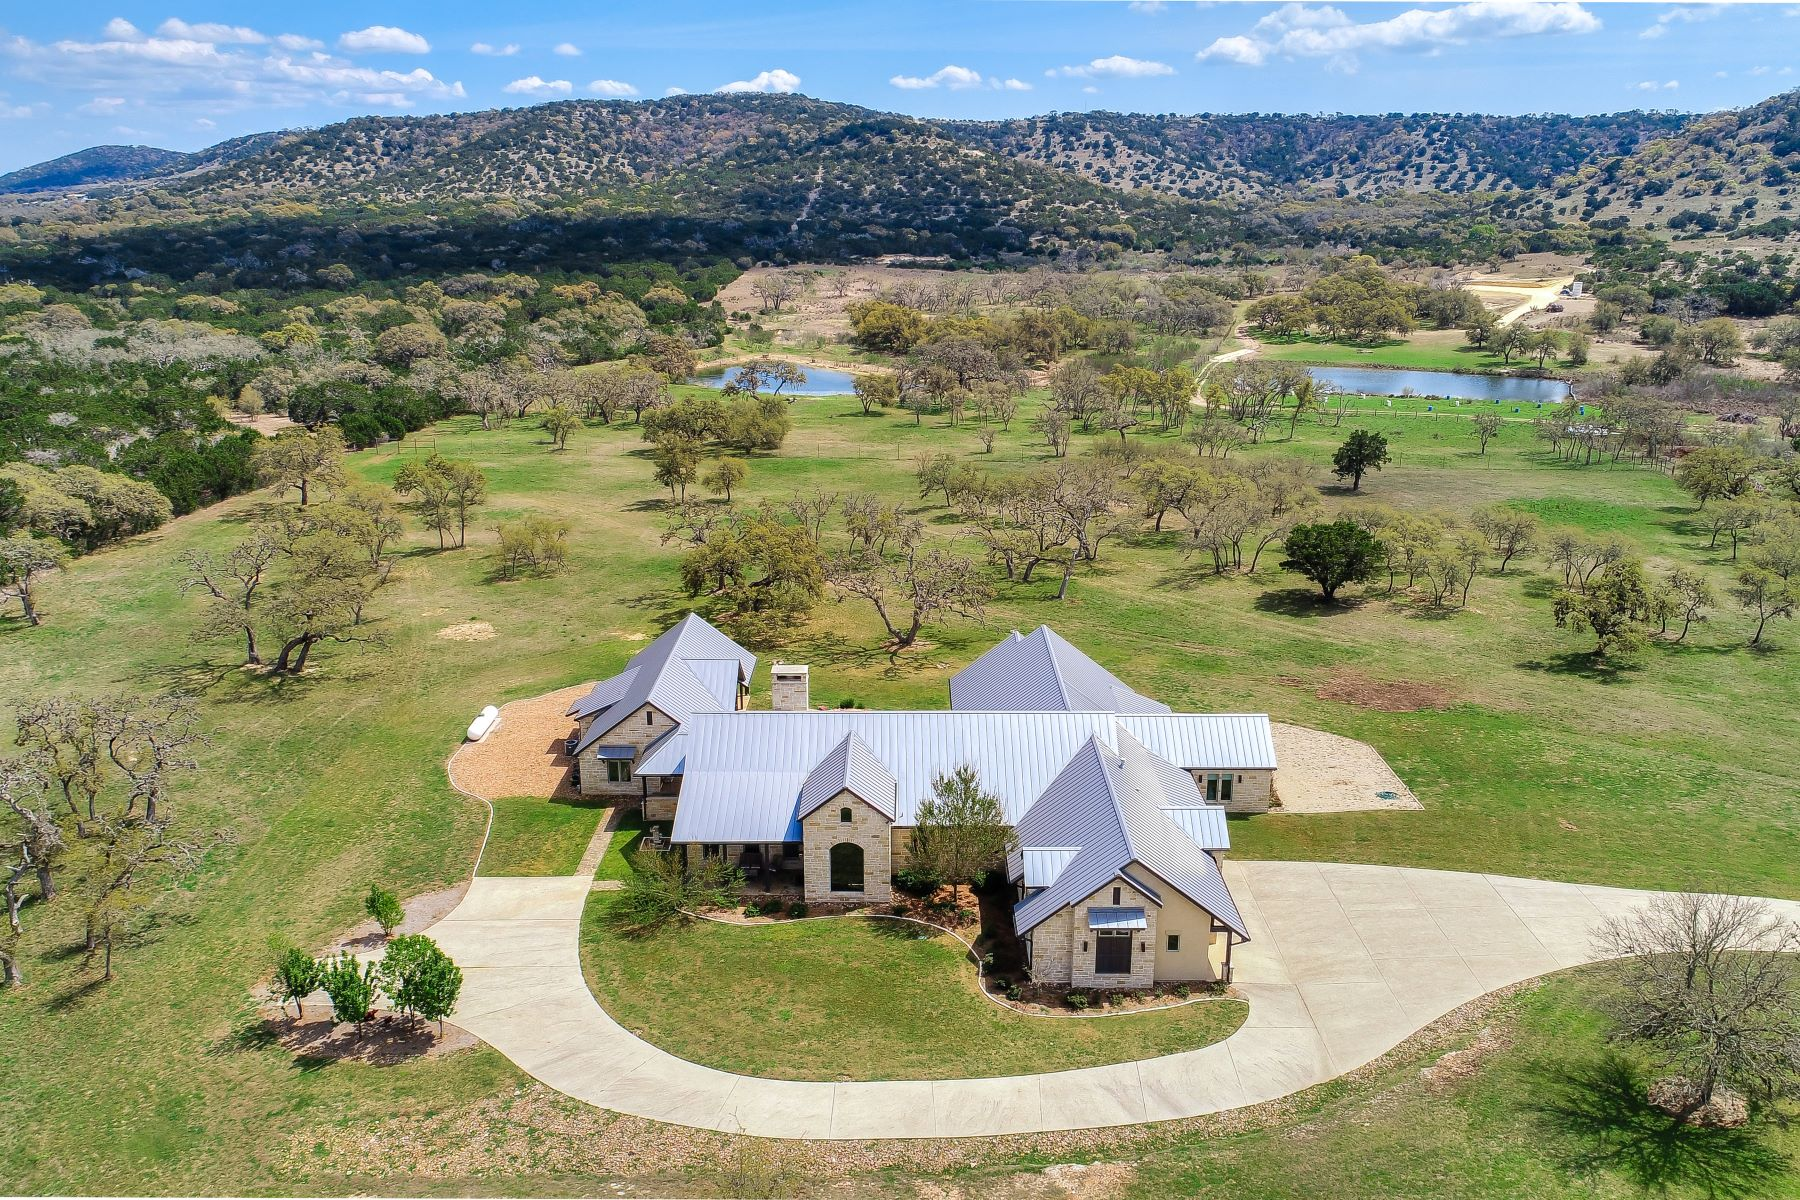 Single Family Homes for Active at Retreat with Headwaters of San Julian Creek 4149 FM 1077 Bandera, Texas 78003 United States